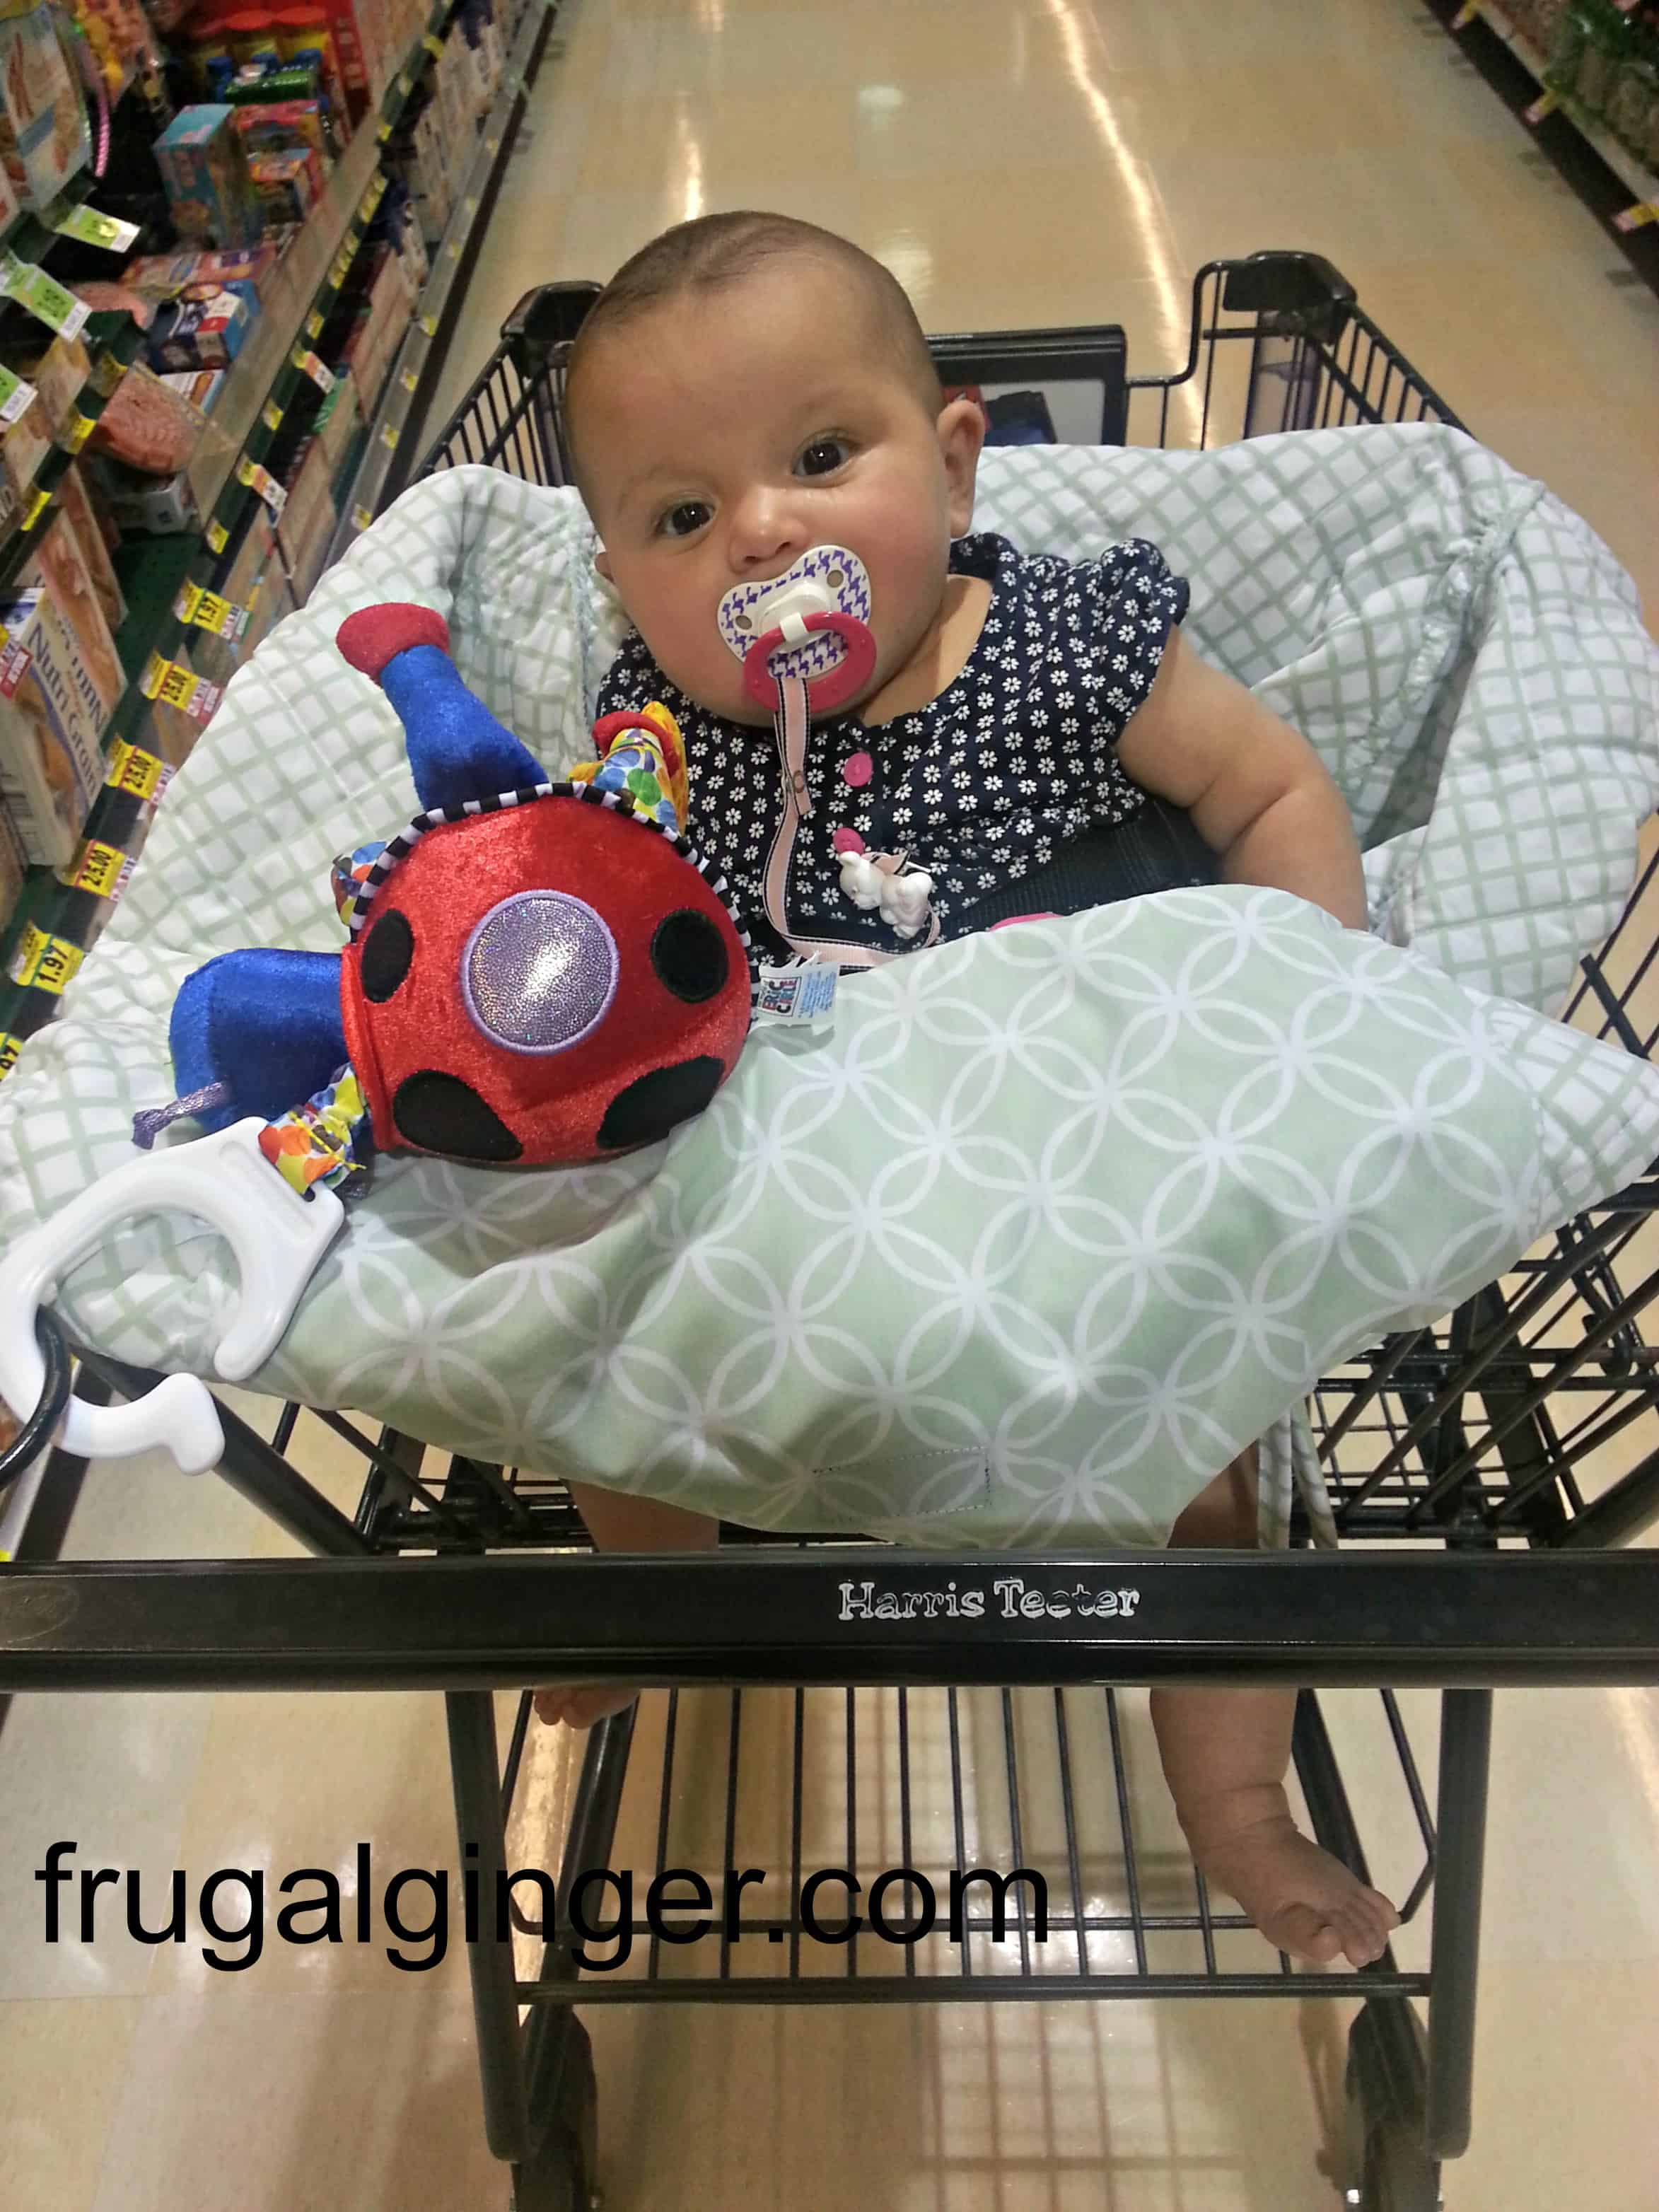 balboa baby shopping cart cover review  giveaway - aria's baby cart cover